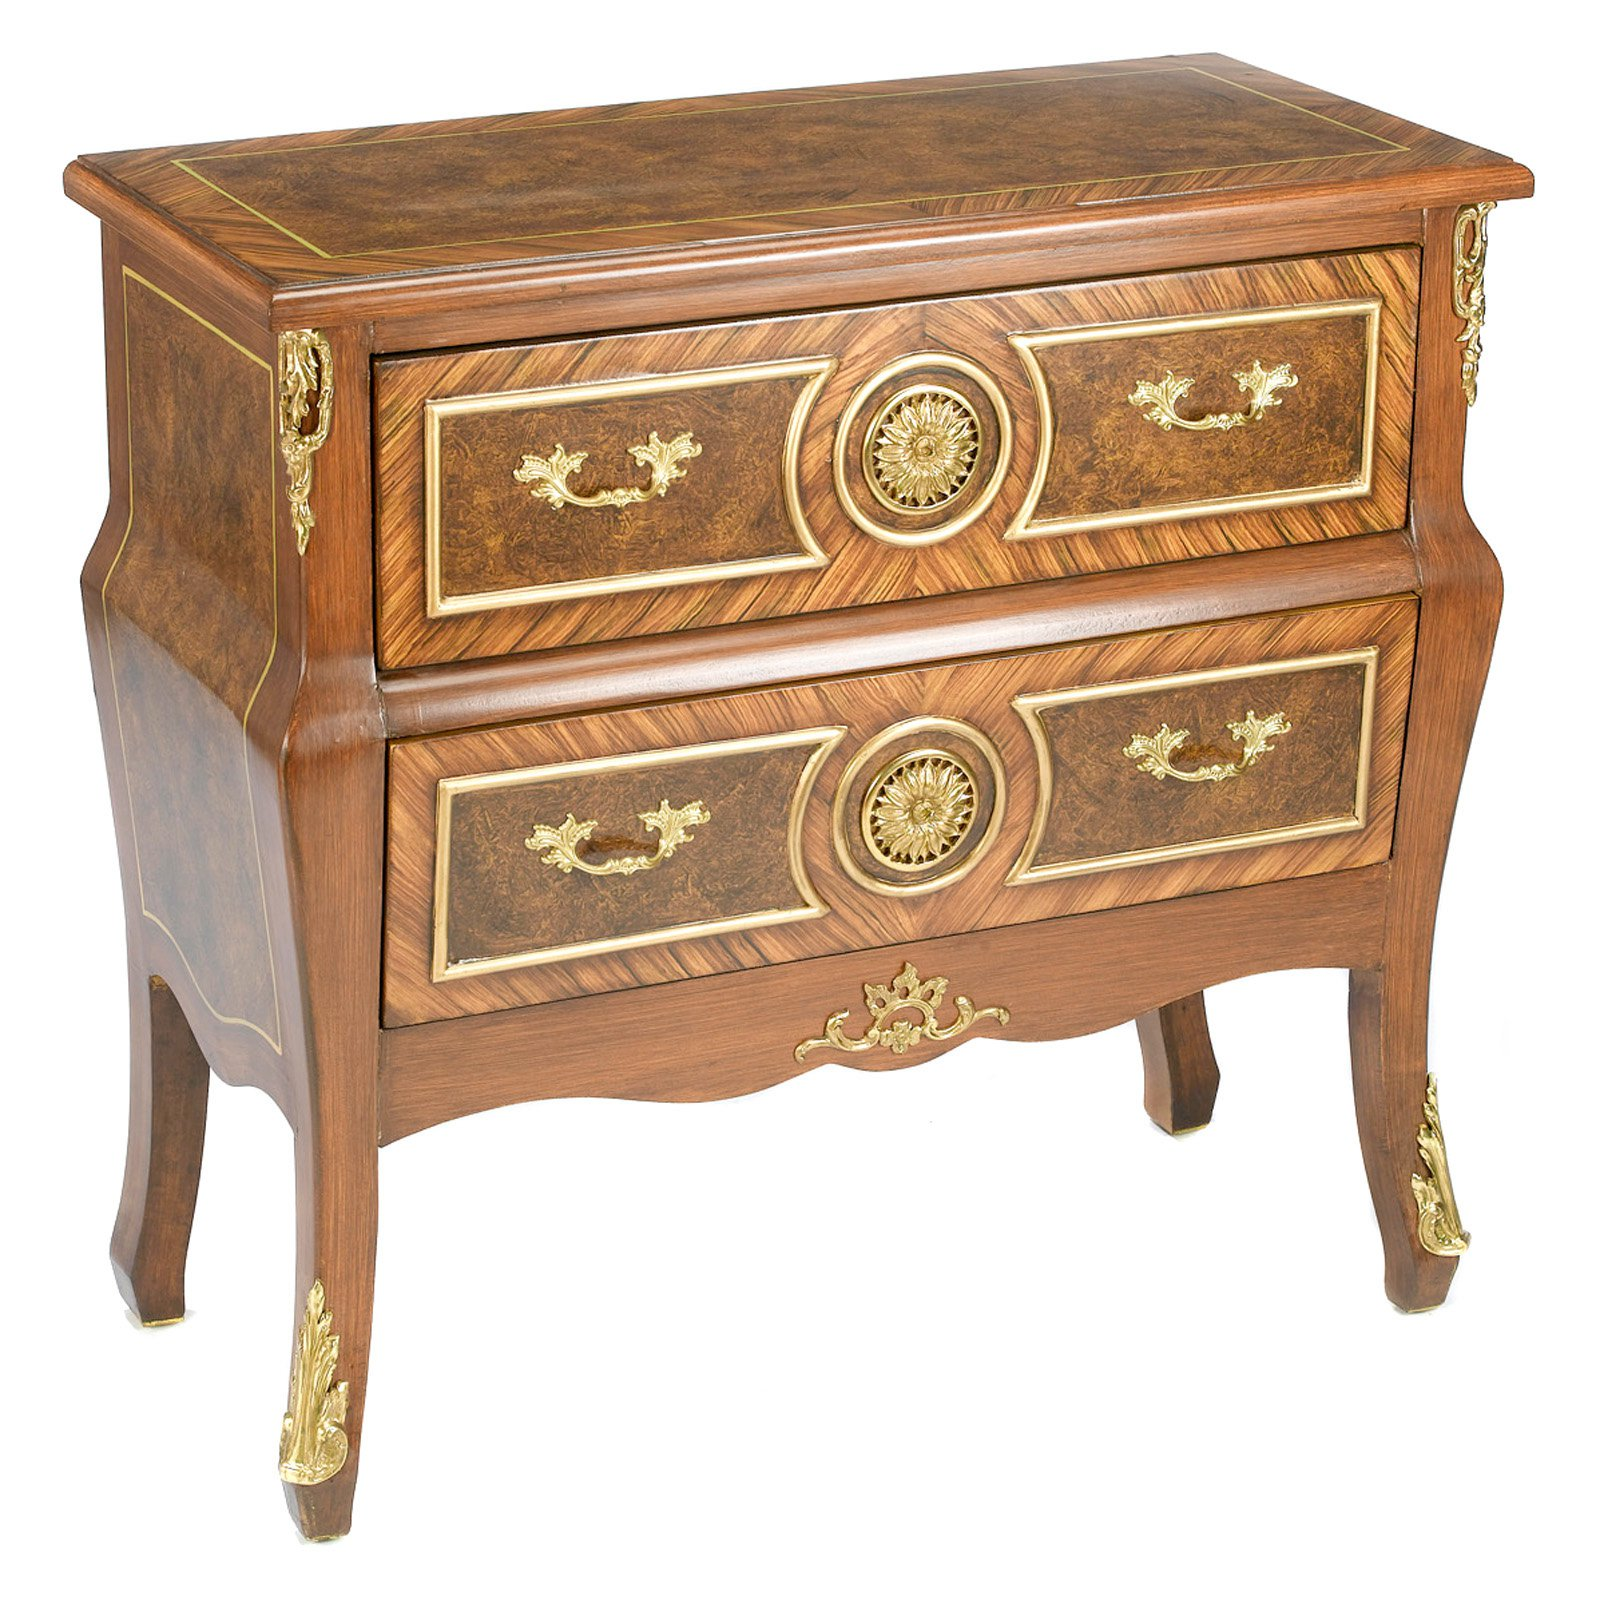 AA Importing 2 Drawer Chest Brown by AA Importing